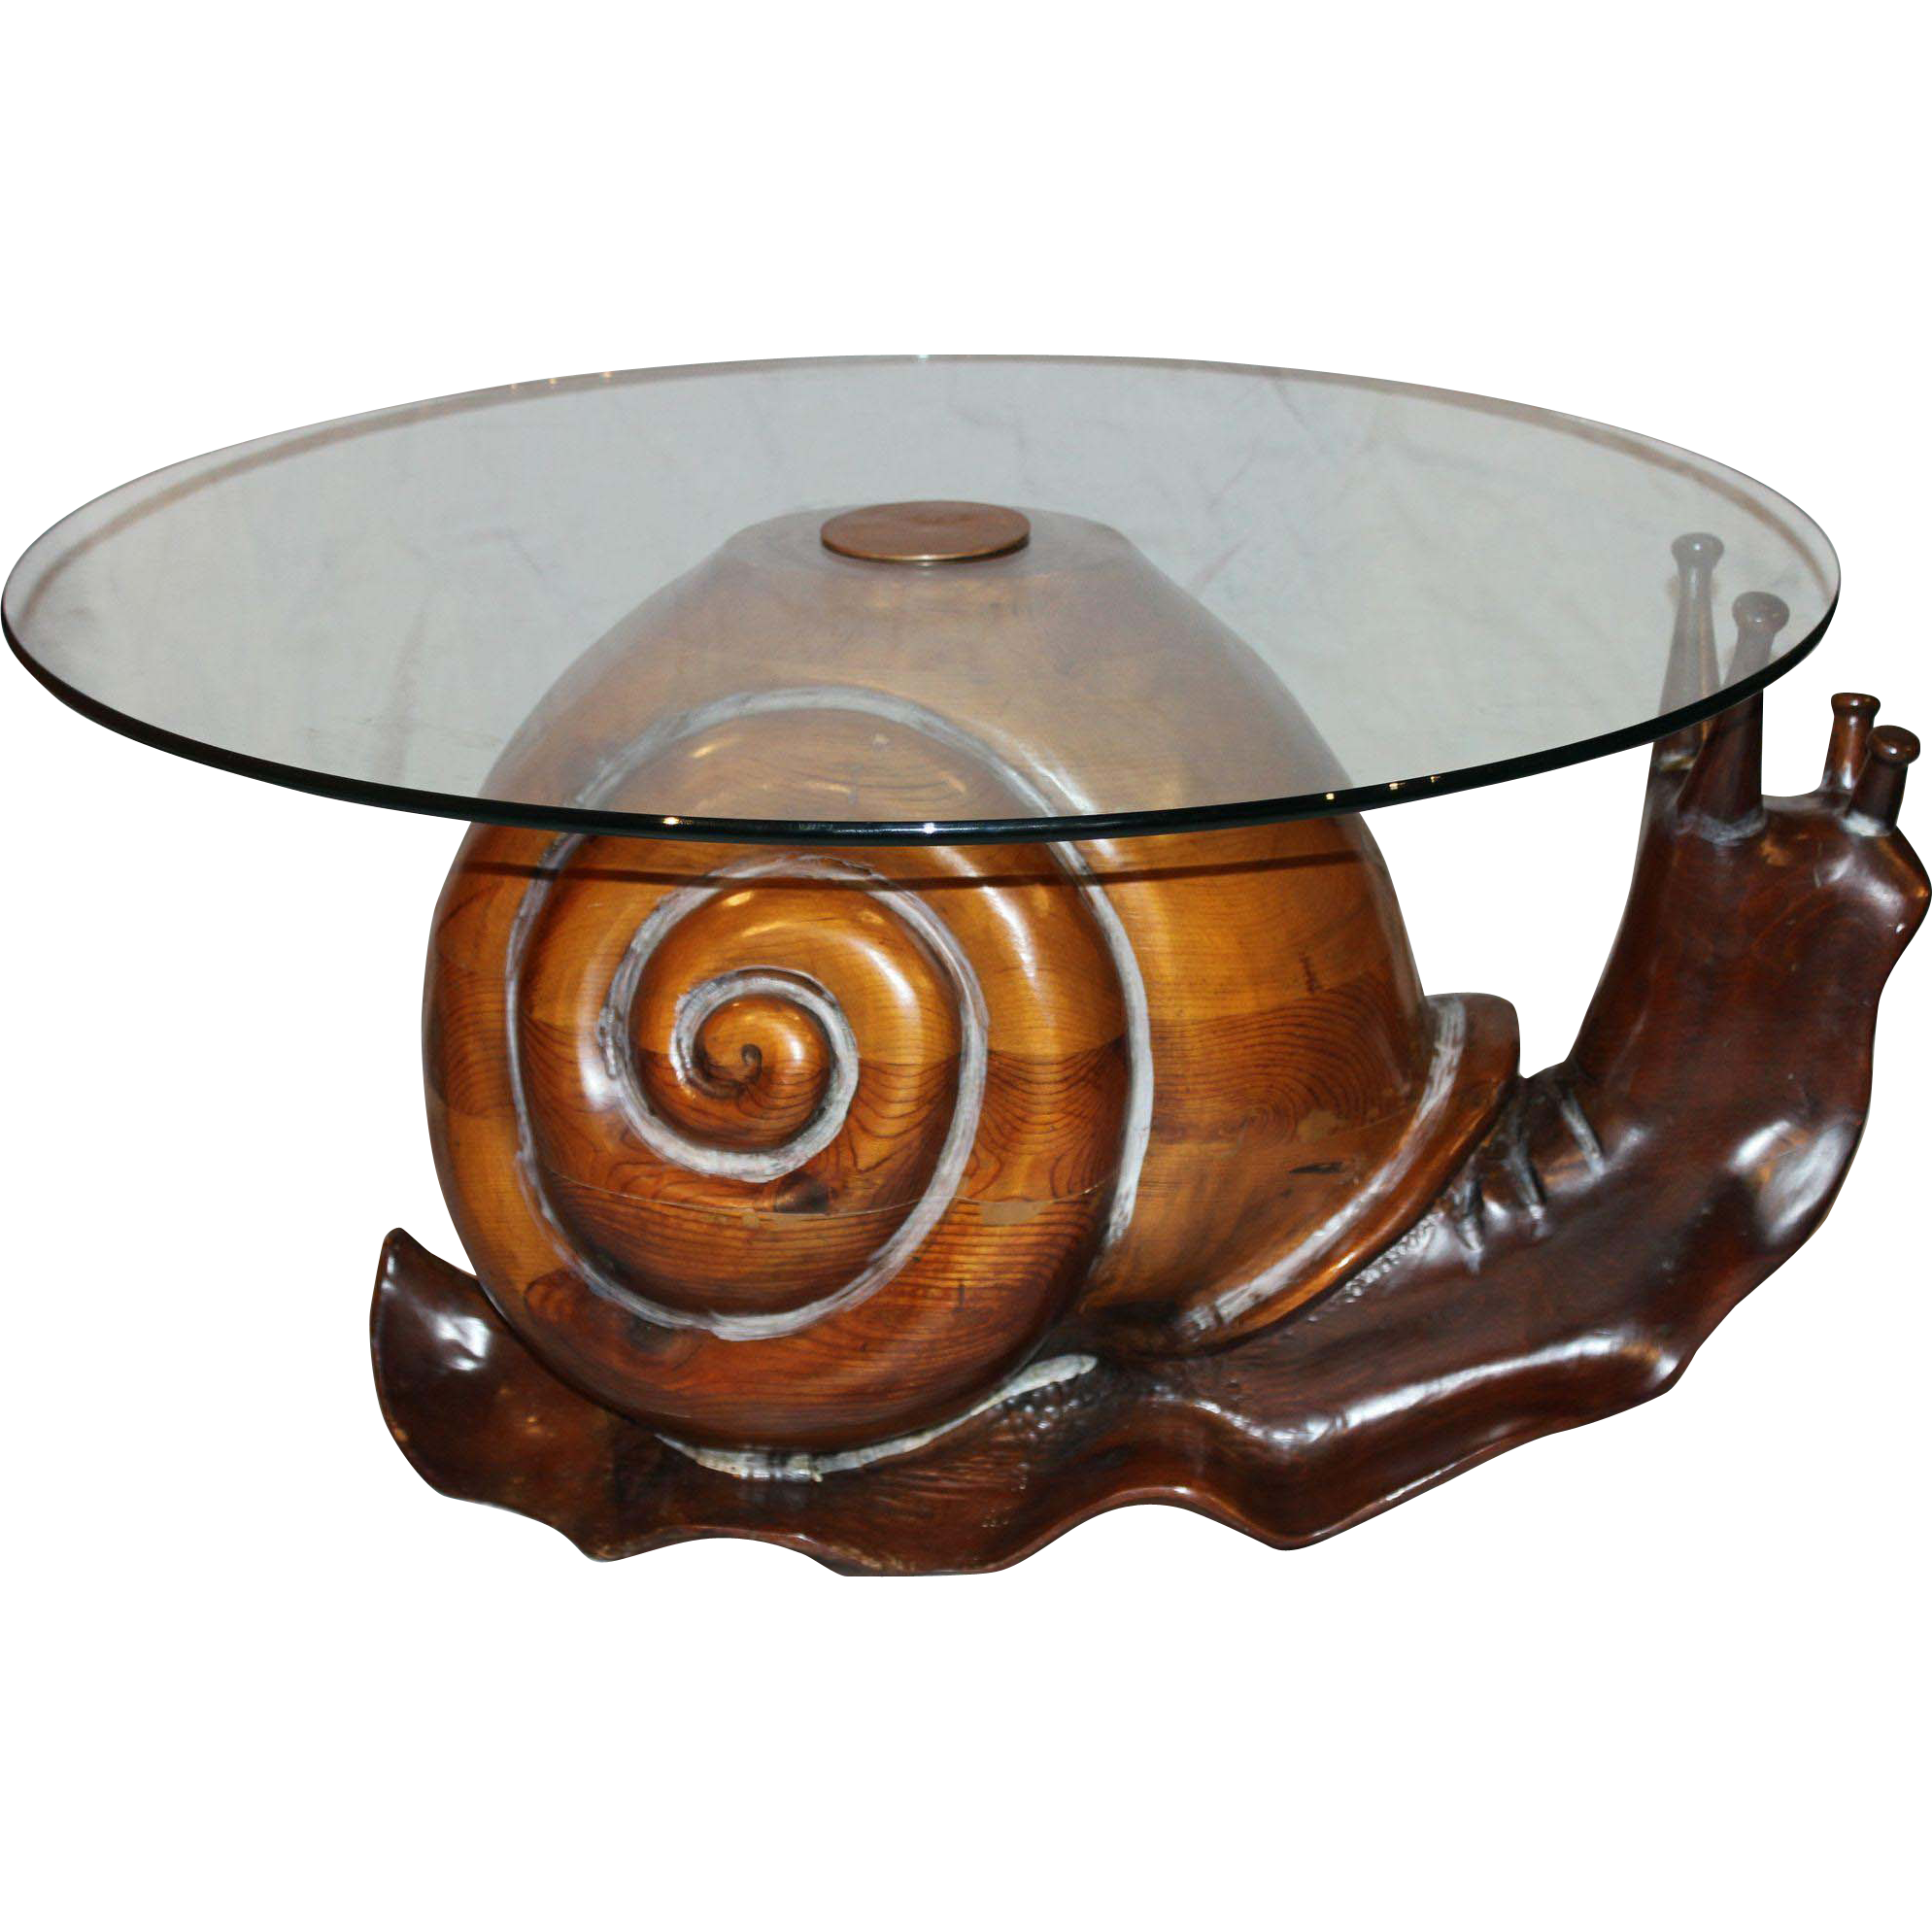 Federico Armijo Glass Top Carved Snail Table from nhantiquecoop on